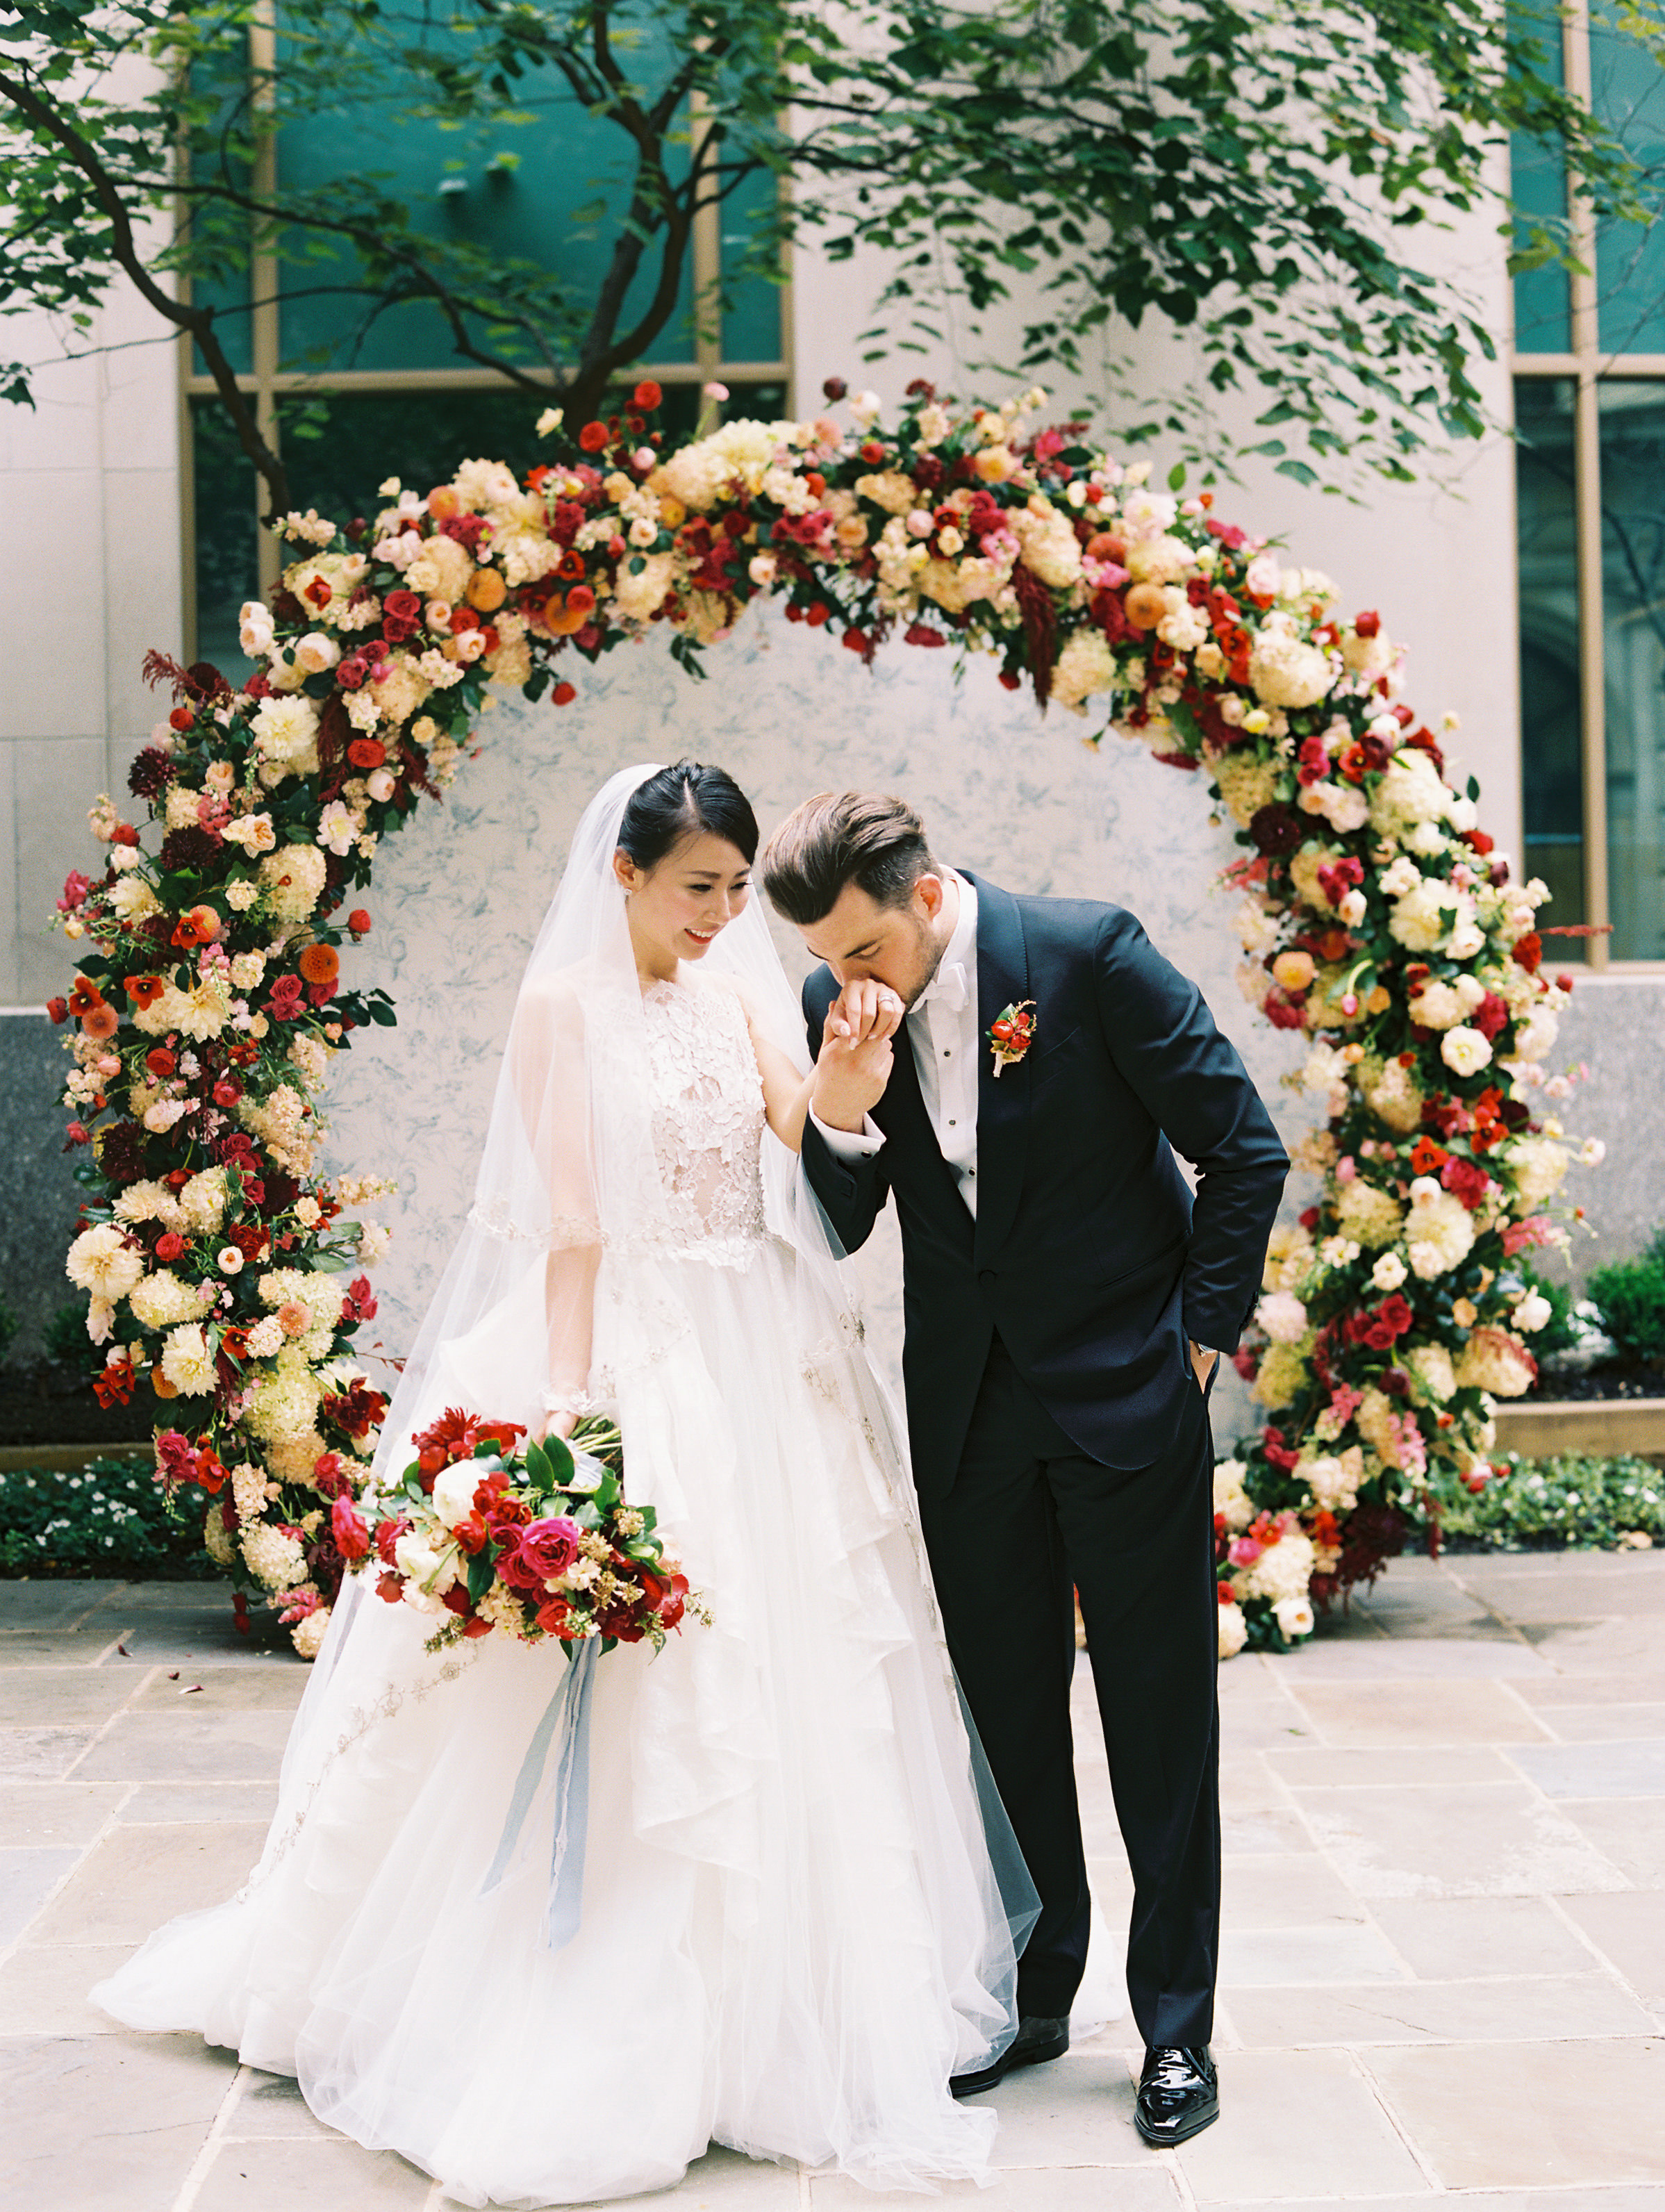 DC Wedding Planner BrightOccasion, Abby Jiu Photography, Multicultural Wedding with Pops of Red at the St. Regis Washington